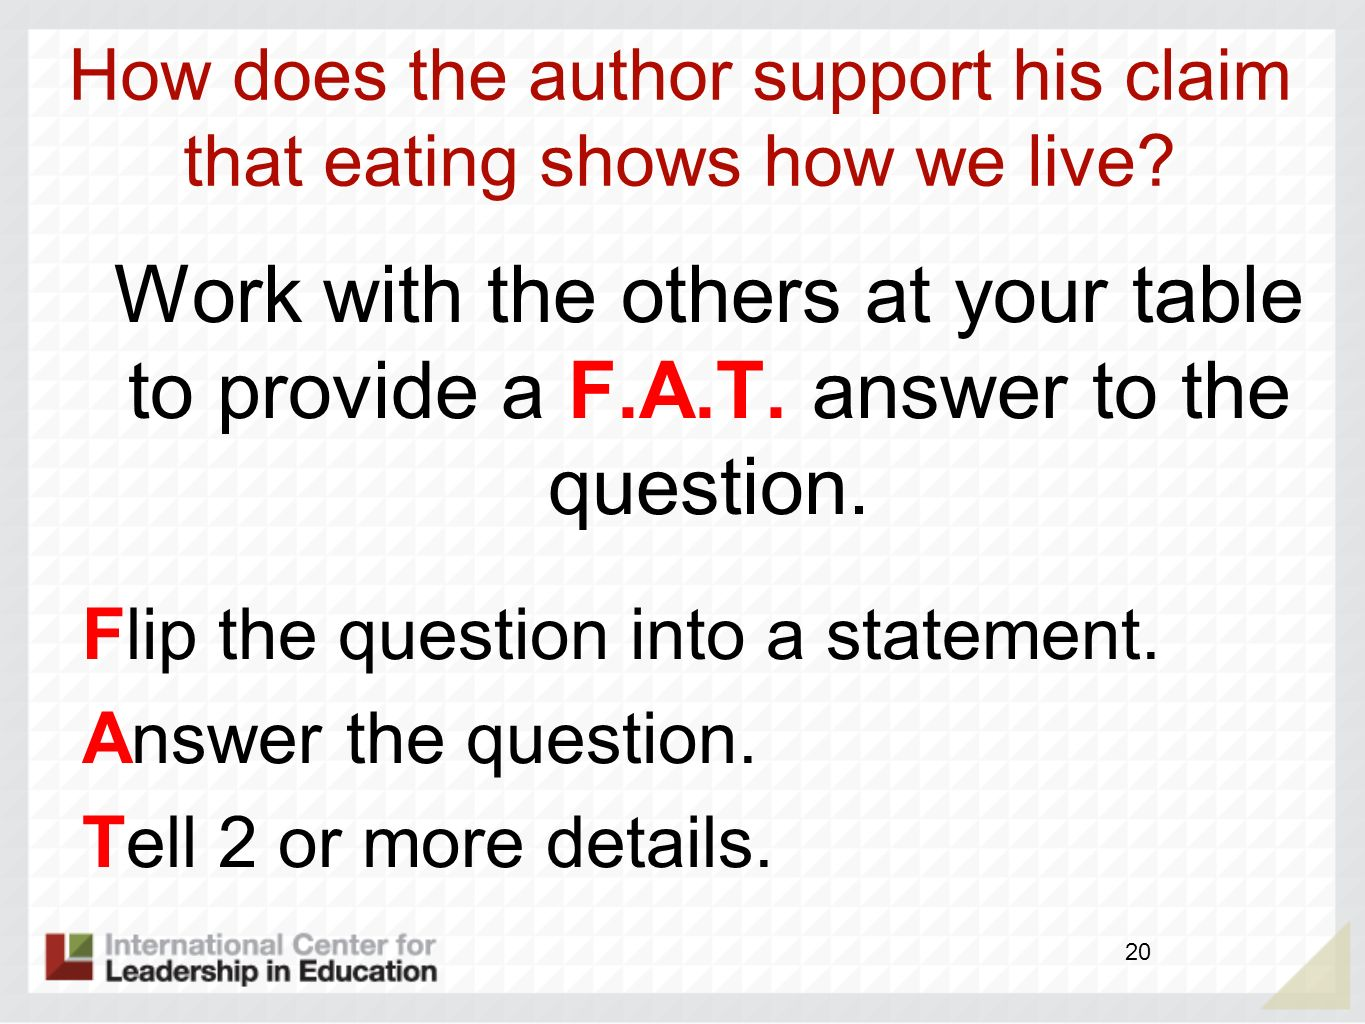 How does the author support his claim that eating shows how we live